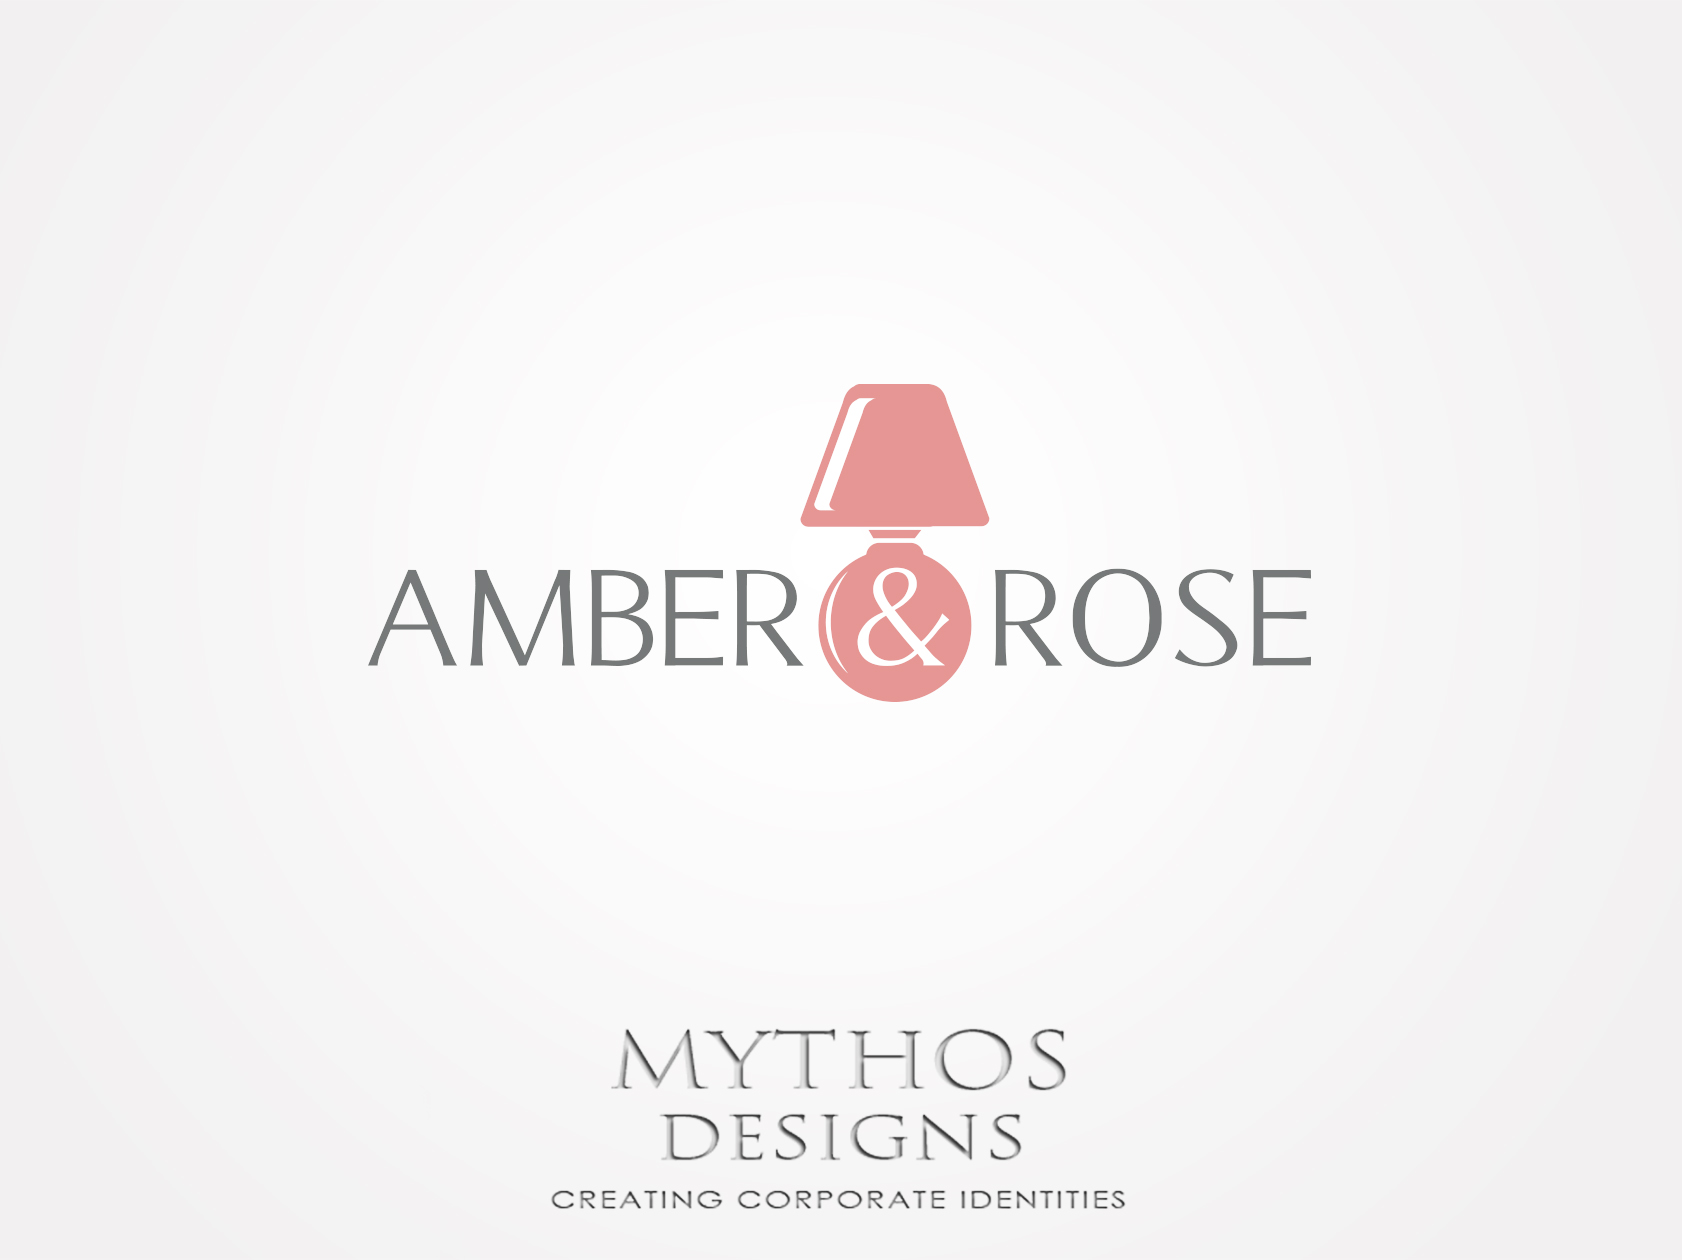 Logo Design by Mythos Designs - Entry No. 79 in the Logo Design Contest Creative Logo Design for Amber & Rose.